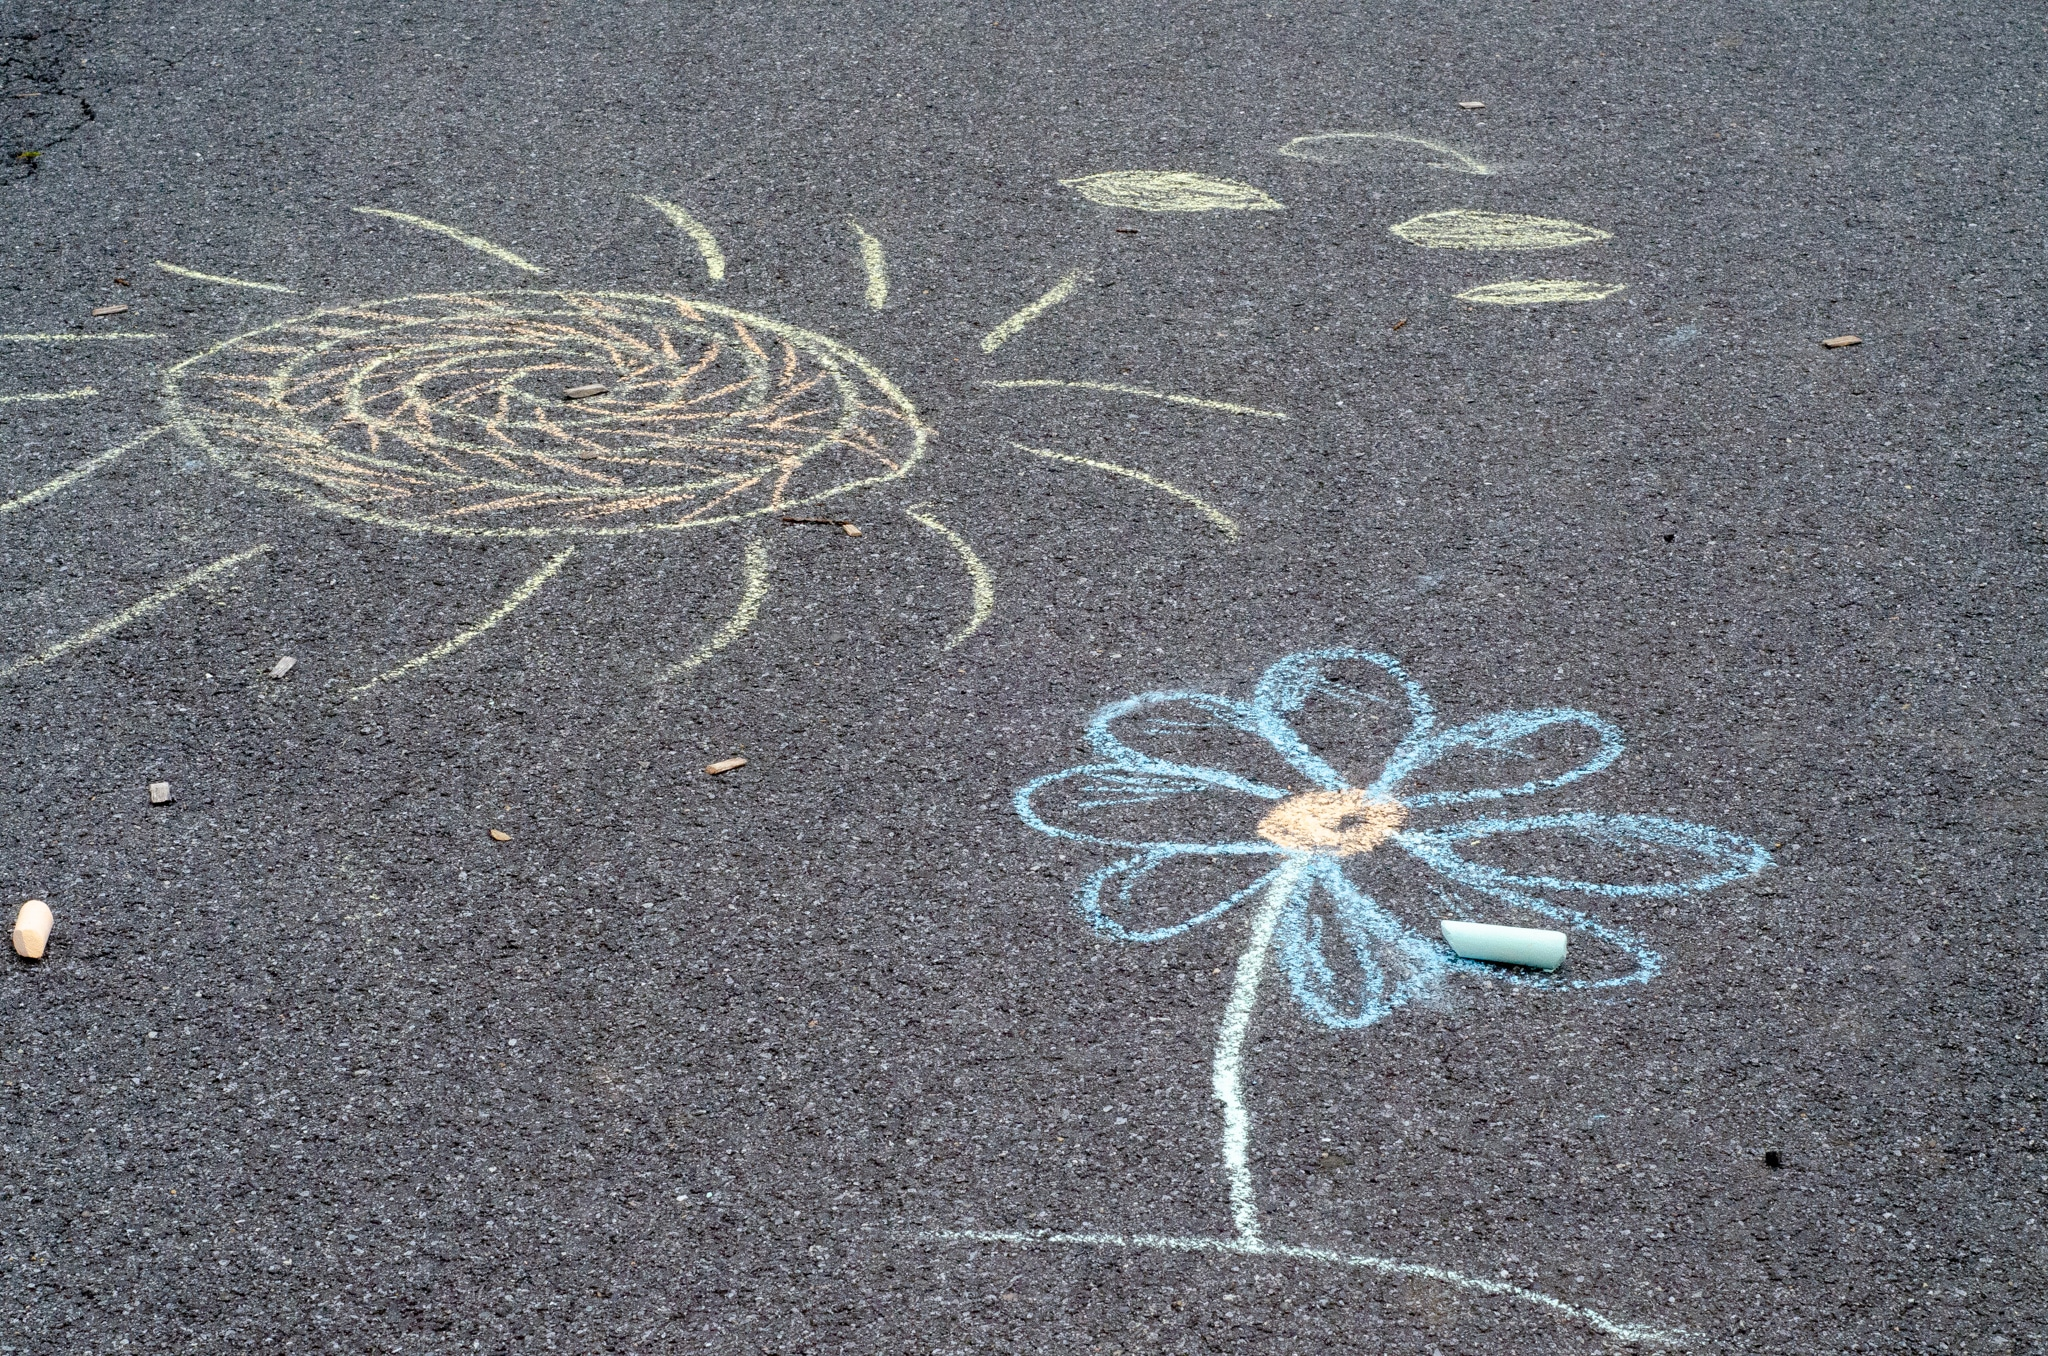 Lemonade Inspired Art Chalk Art. Looking for a fun way to keep the kids entertained this summer? Celebrate the start of summer with Lemonade-Inspired Art In the Backyard.